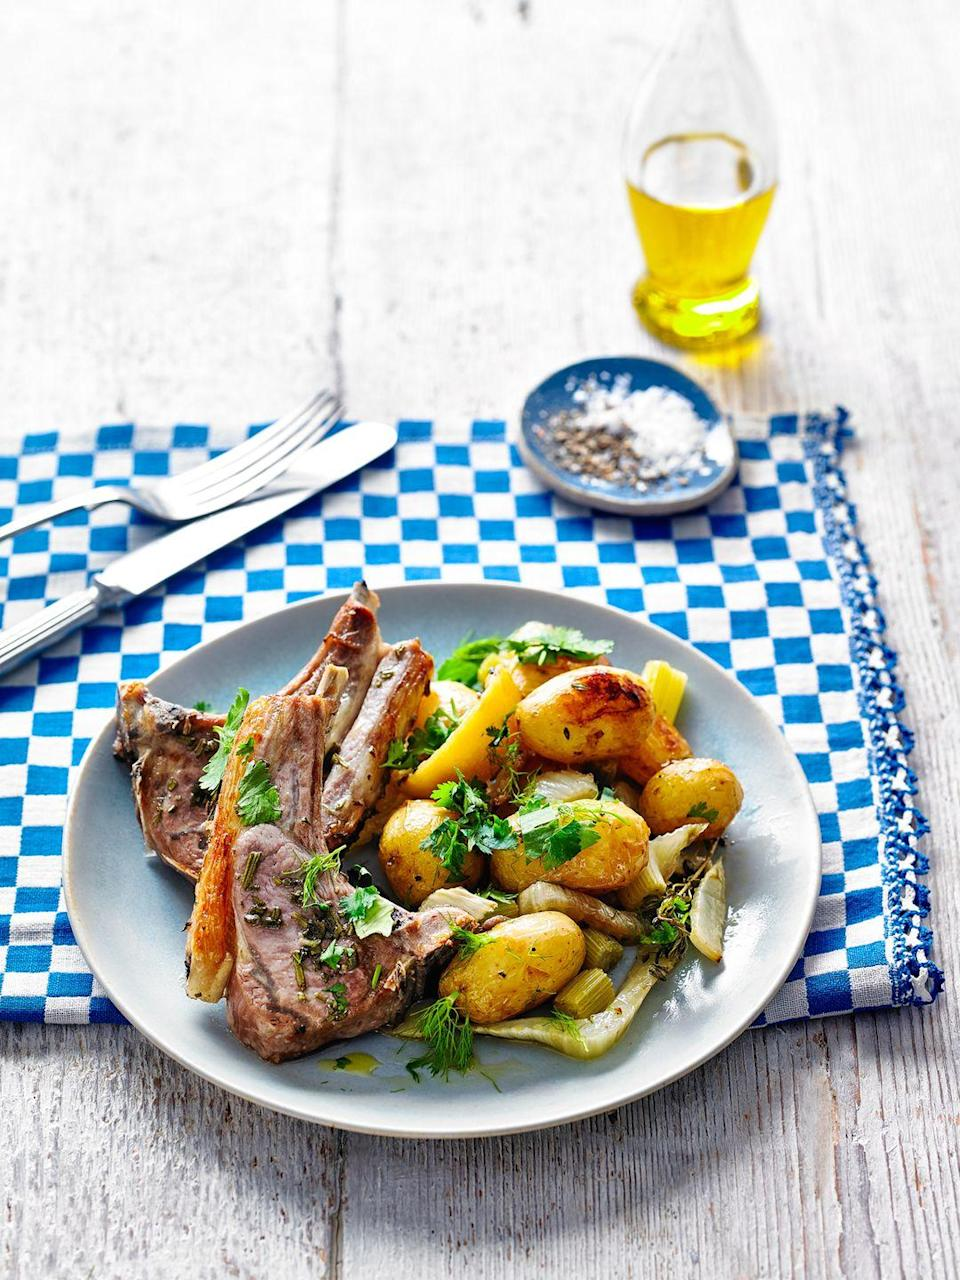 """<p>The mixture of fresh herbs adds brightness to this lamb traybake recipe, but you can replace the thyme and rosemary with their dried versions (using about 1/2tsp and 1tsp respectively).</p><p><strong>Recipe: <a href=""""https://www.goodhousekeeping.com/uk/food/recipes/a29103084/lamb-traybake/"""" rel=""""nofollow noopener"""" target=""""_blank"""" data-ylk=""""slk:Herby Fennel and Lamb Traybake"""" class=""""link rapid-noclick-resp"""">Herby Fennel and Lamb Traybake</a></strong></p>"""